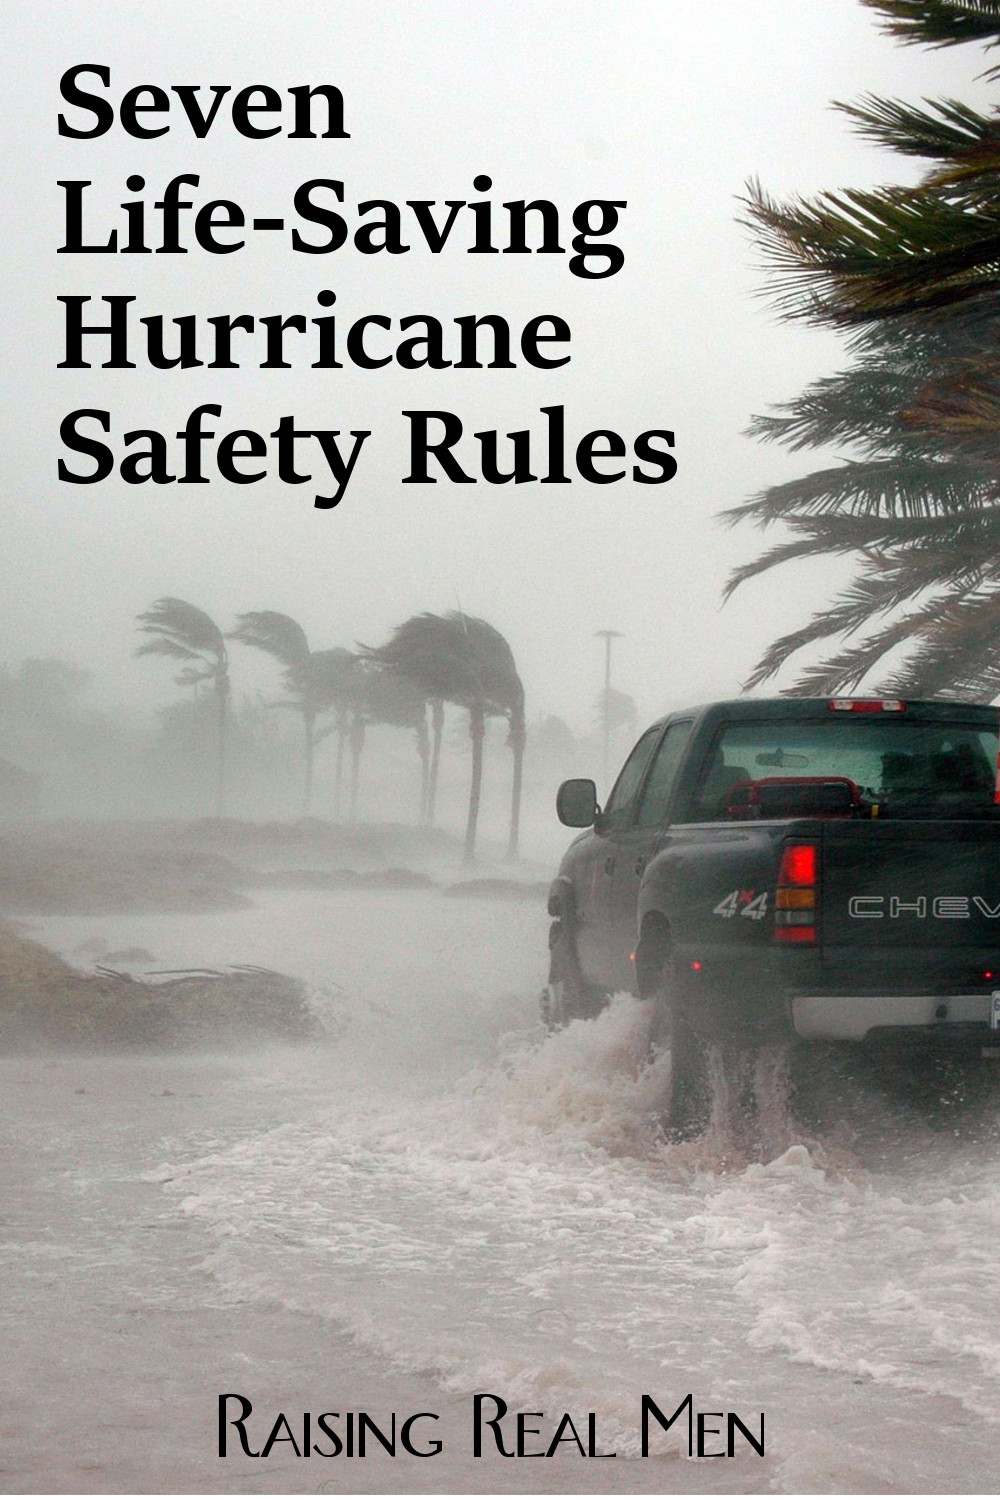 rrm-seven-life-saving-hurricane-safety-rules